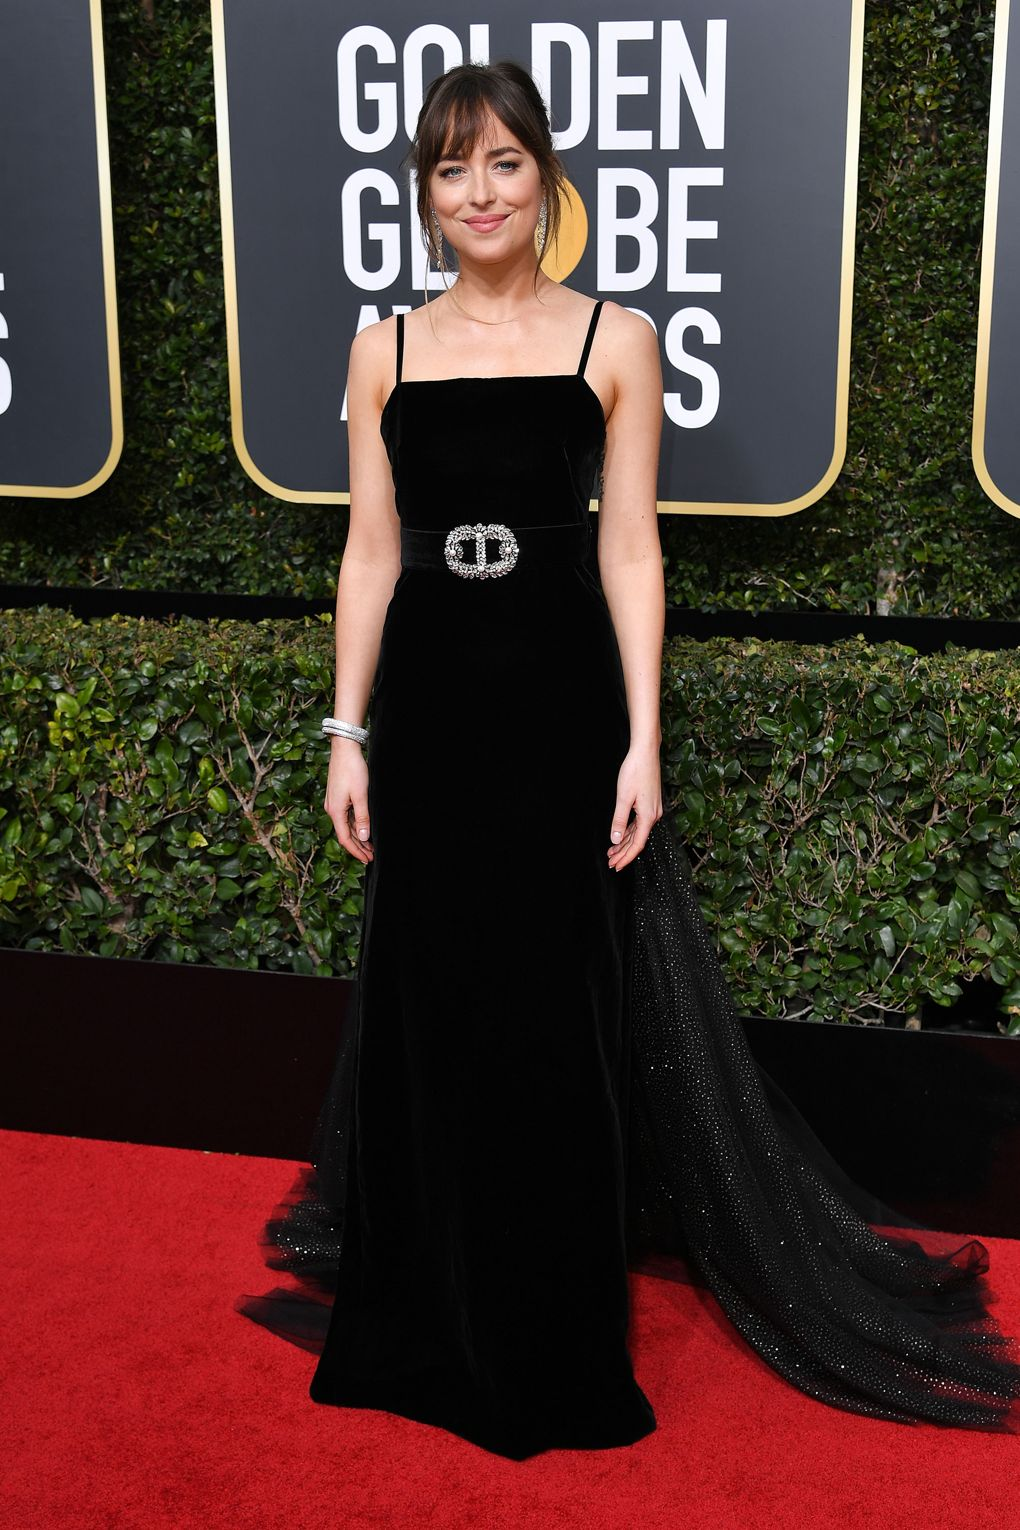 Red Carpet Dresses Golden Globes 2018 2019 Part 2 B2b